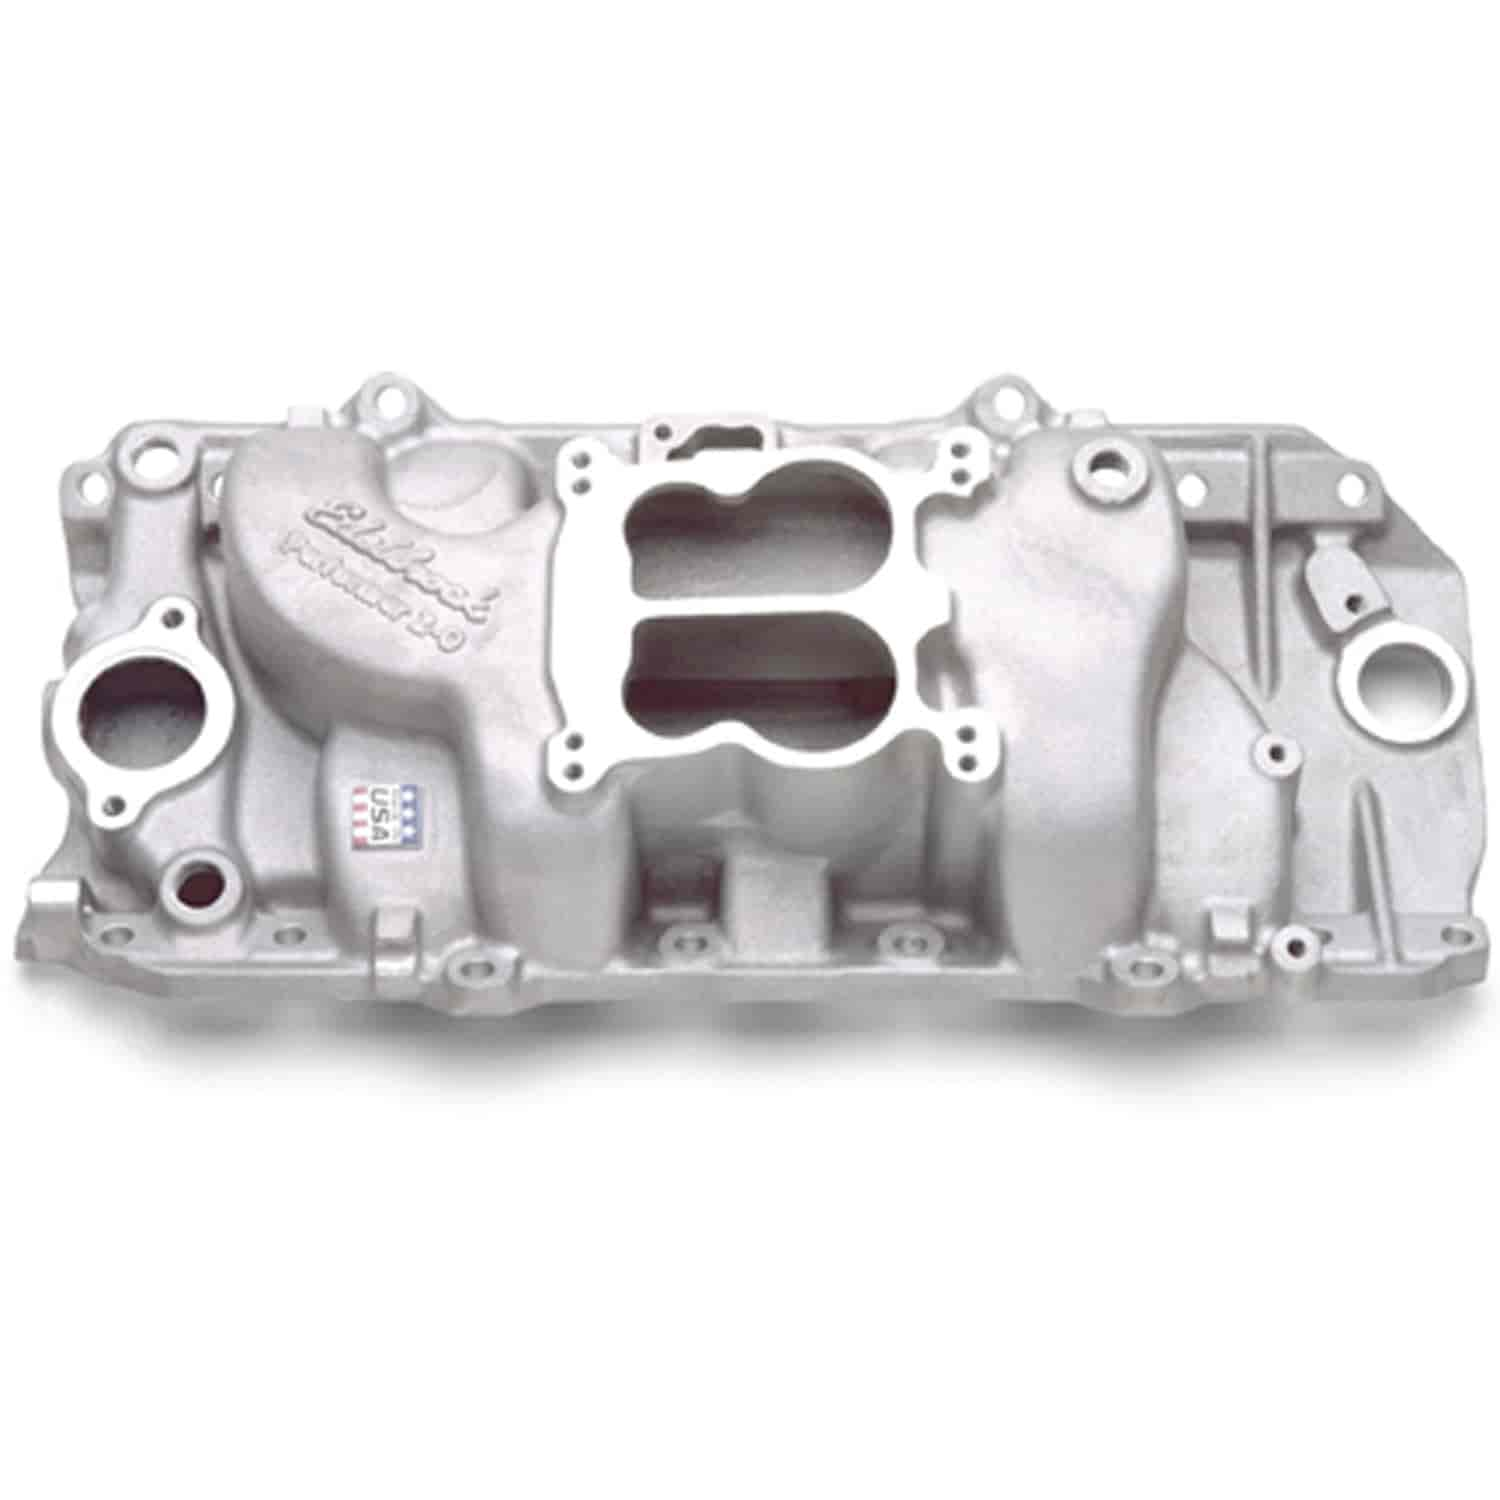 Edelbrock 2161 - Edelbrock Performer Intake Manifolds for Chevy